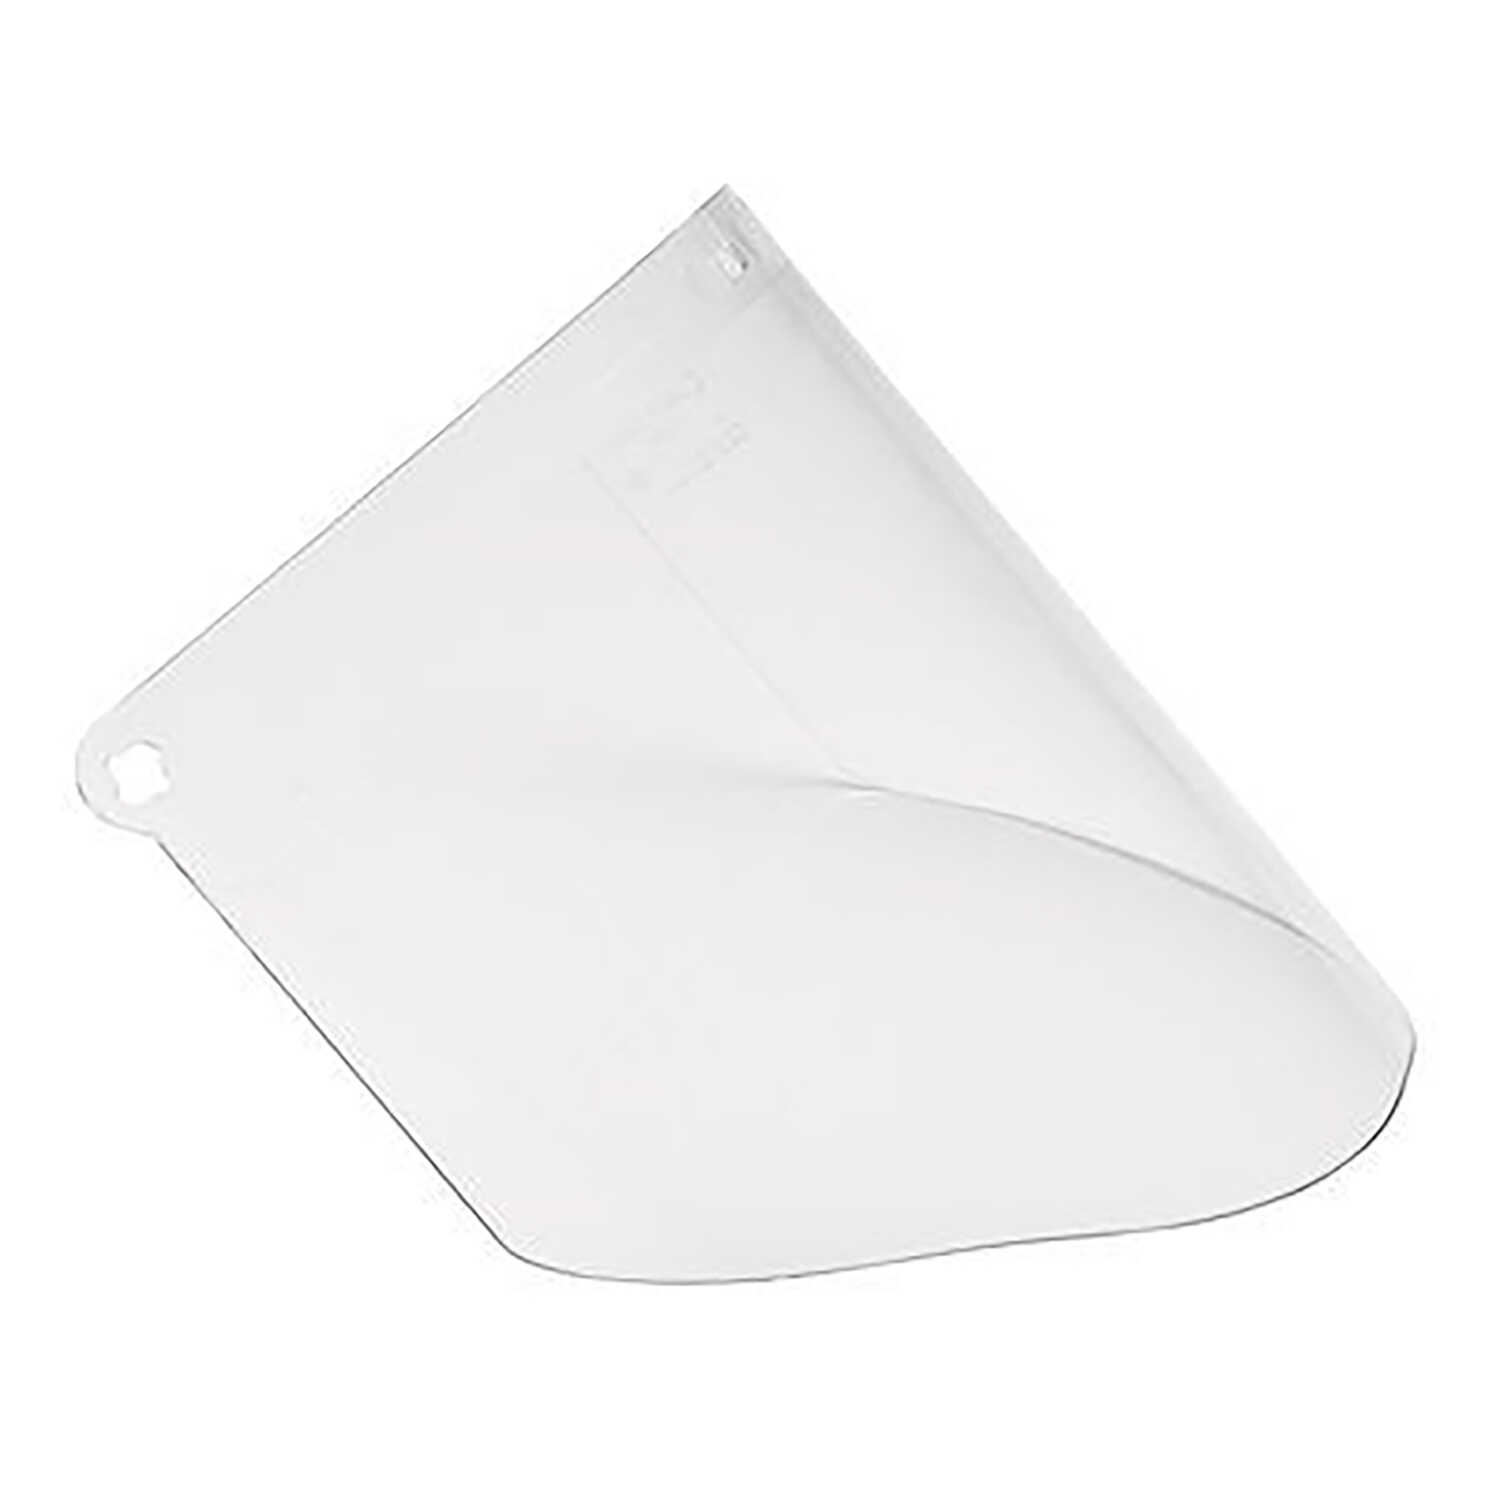 3M  1  Safety Face Shield  Clear  Polycarbonate